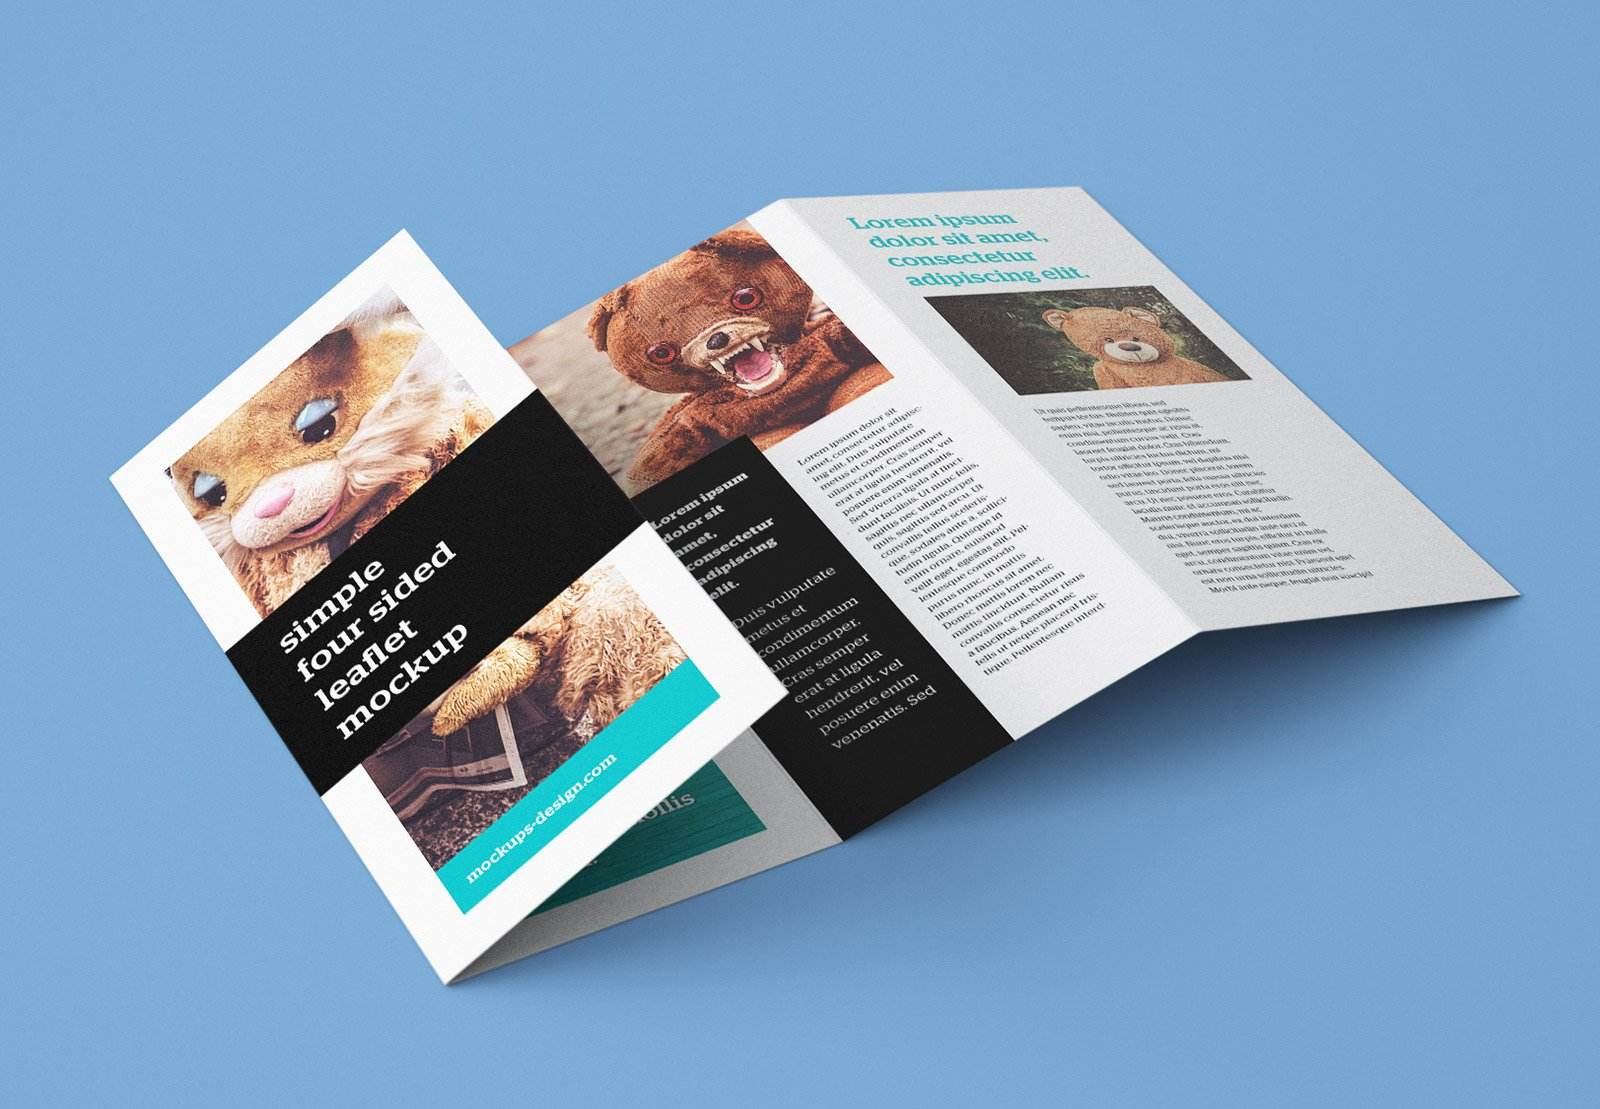 Accordion Fold Brochure Template Inspirational Free Accordion 4 Fold Brochure Leaflet Mockup Psd